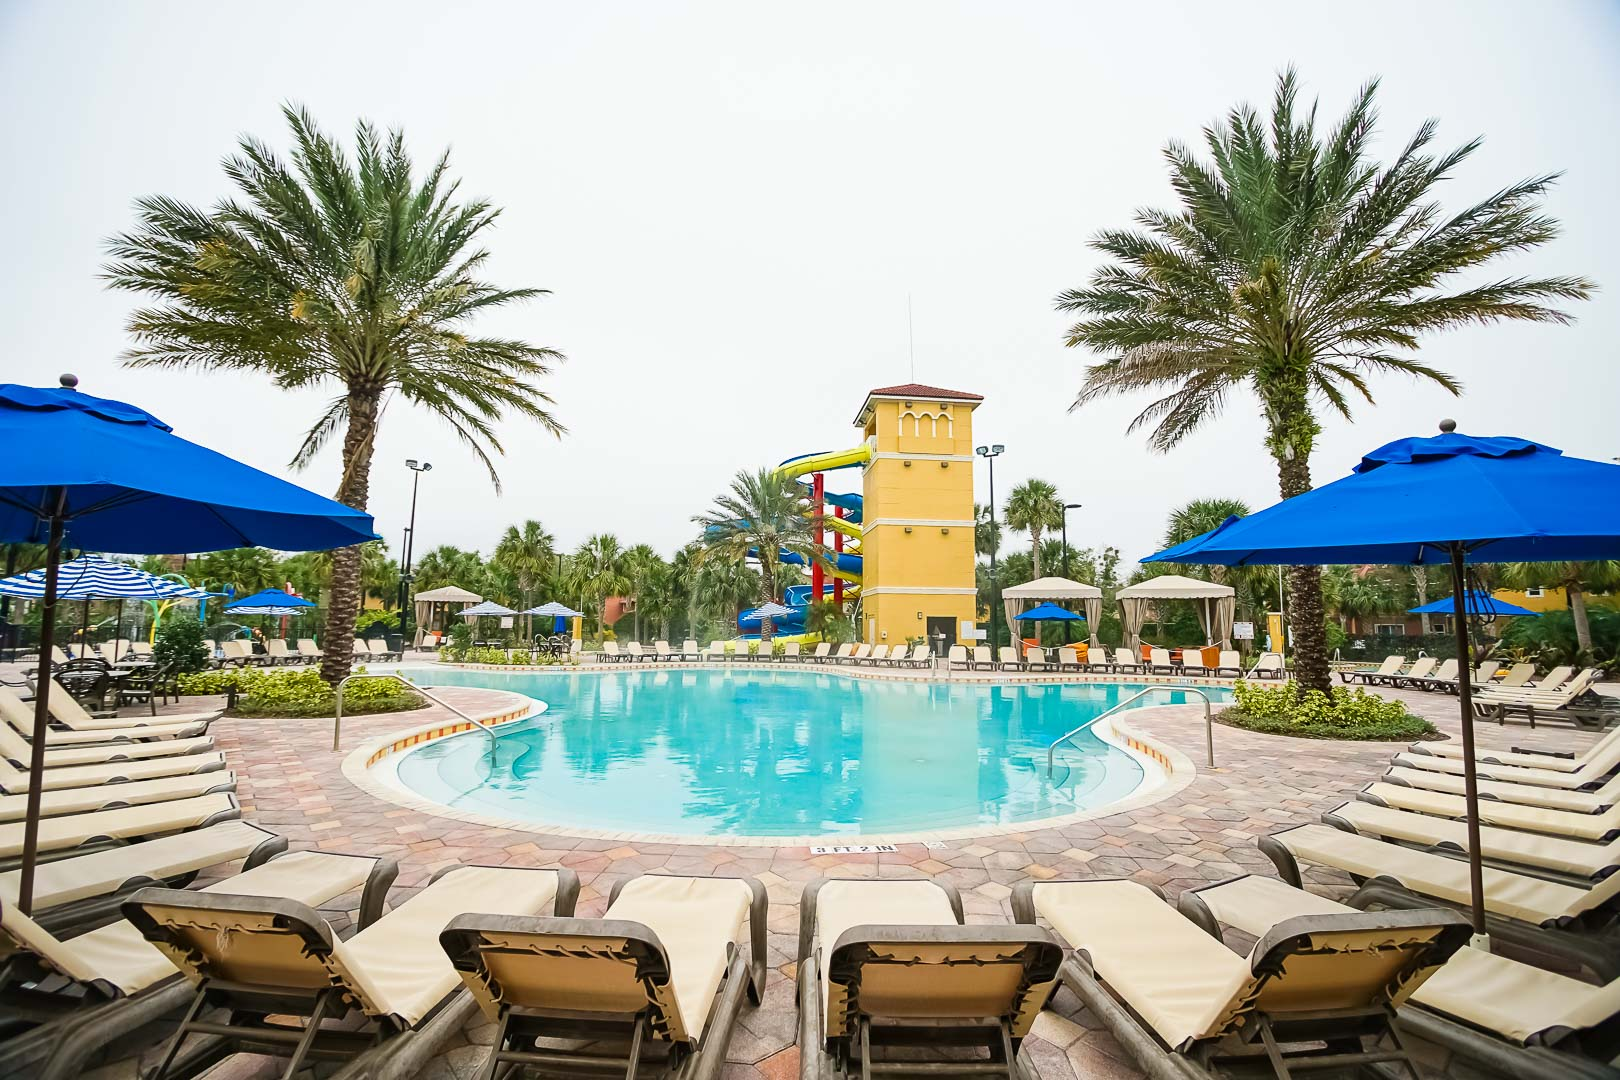 An inviting outdoor swimming pool at VRI's Fantasy World Resort in Florida.